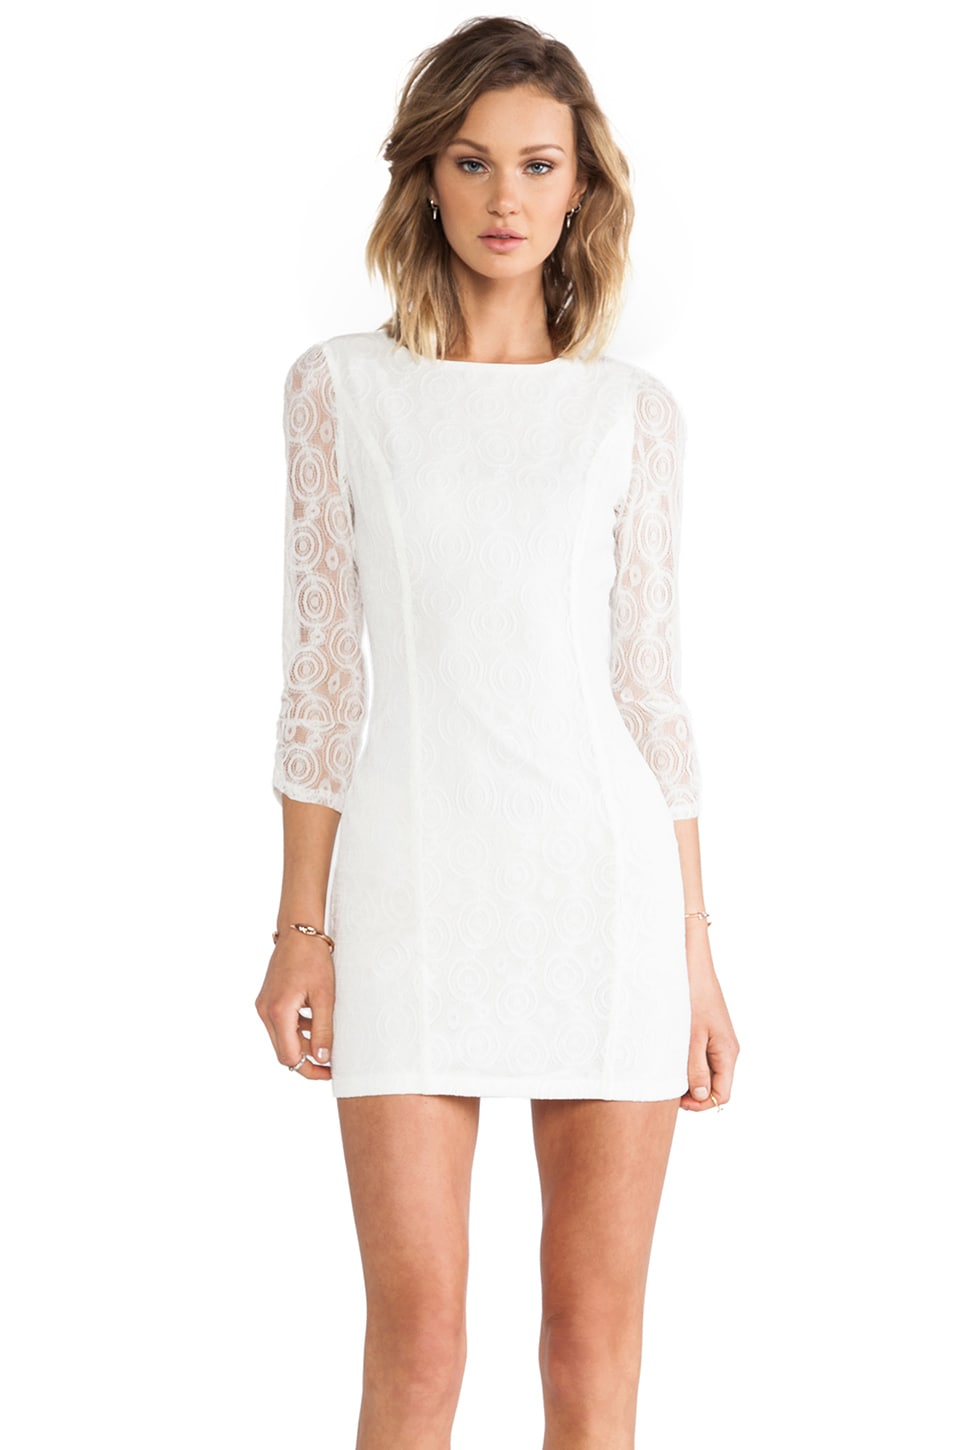 MM Couture by Miss Me Allover Lace Dress in White